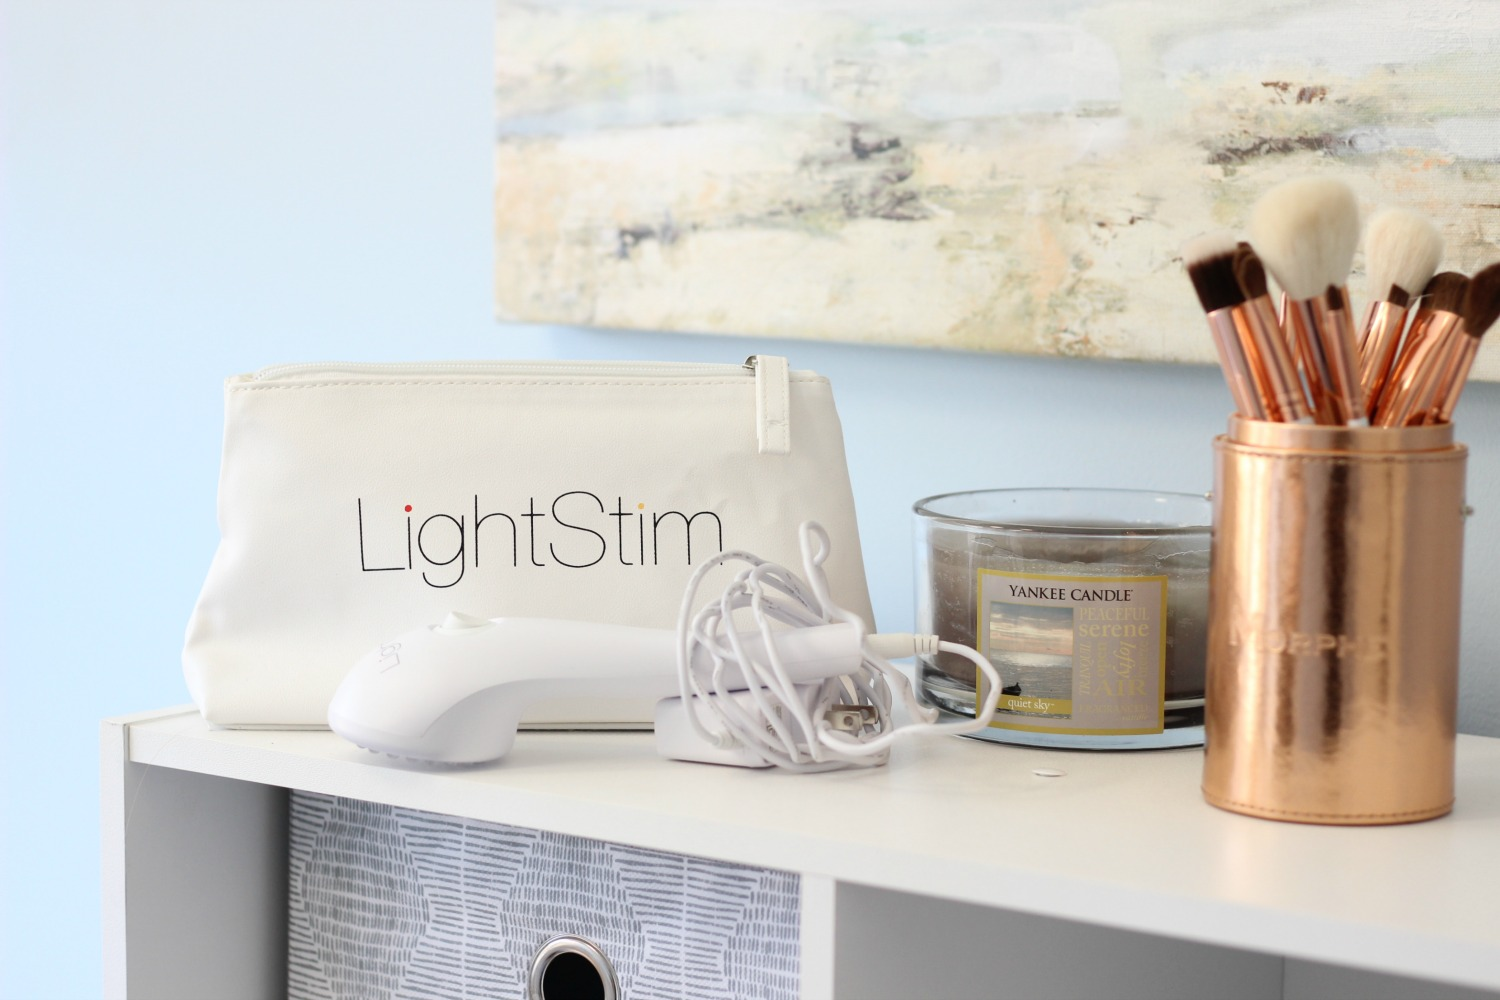 How To Quickly Get Rid of Acne At Home Lightstim for Acne Review | Brighter Darling Blog